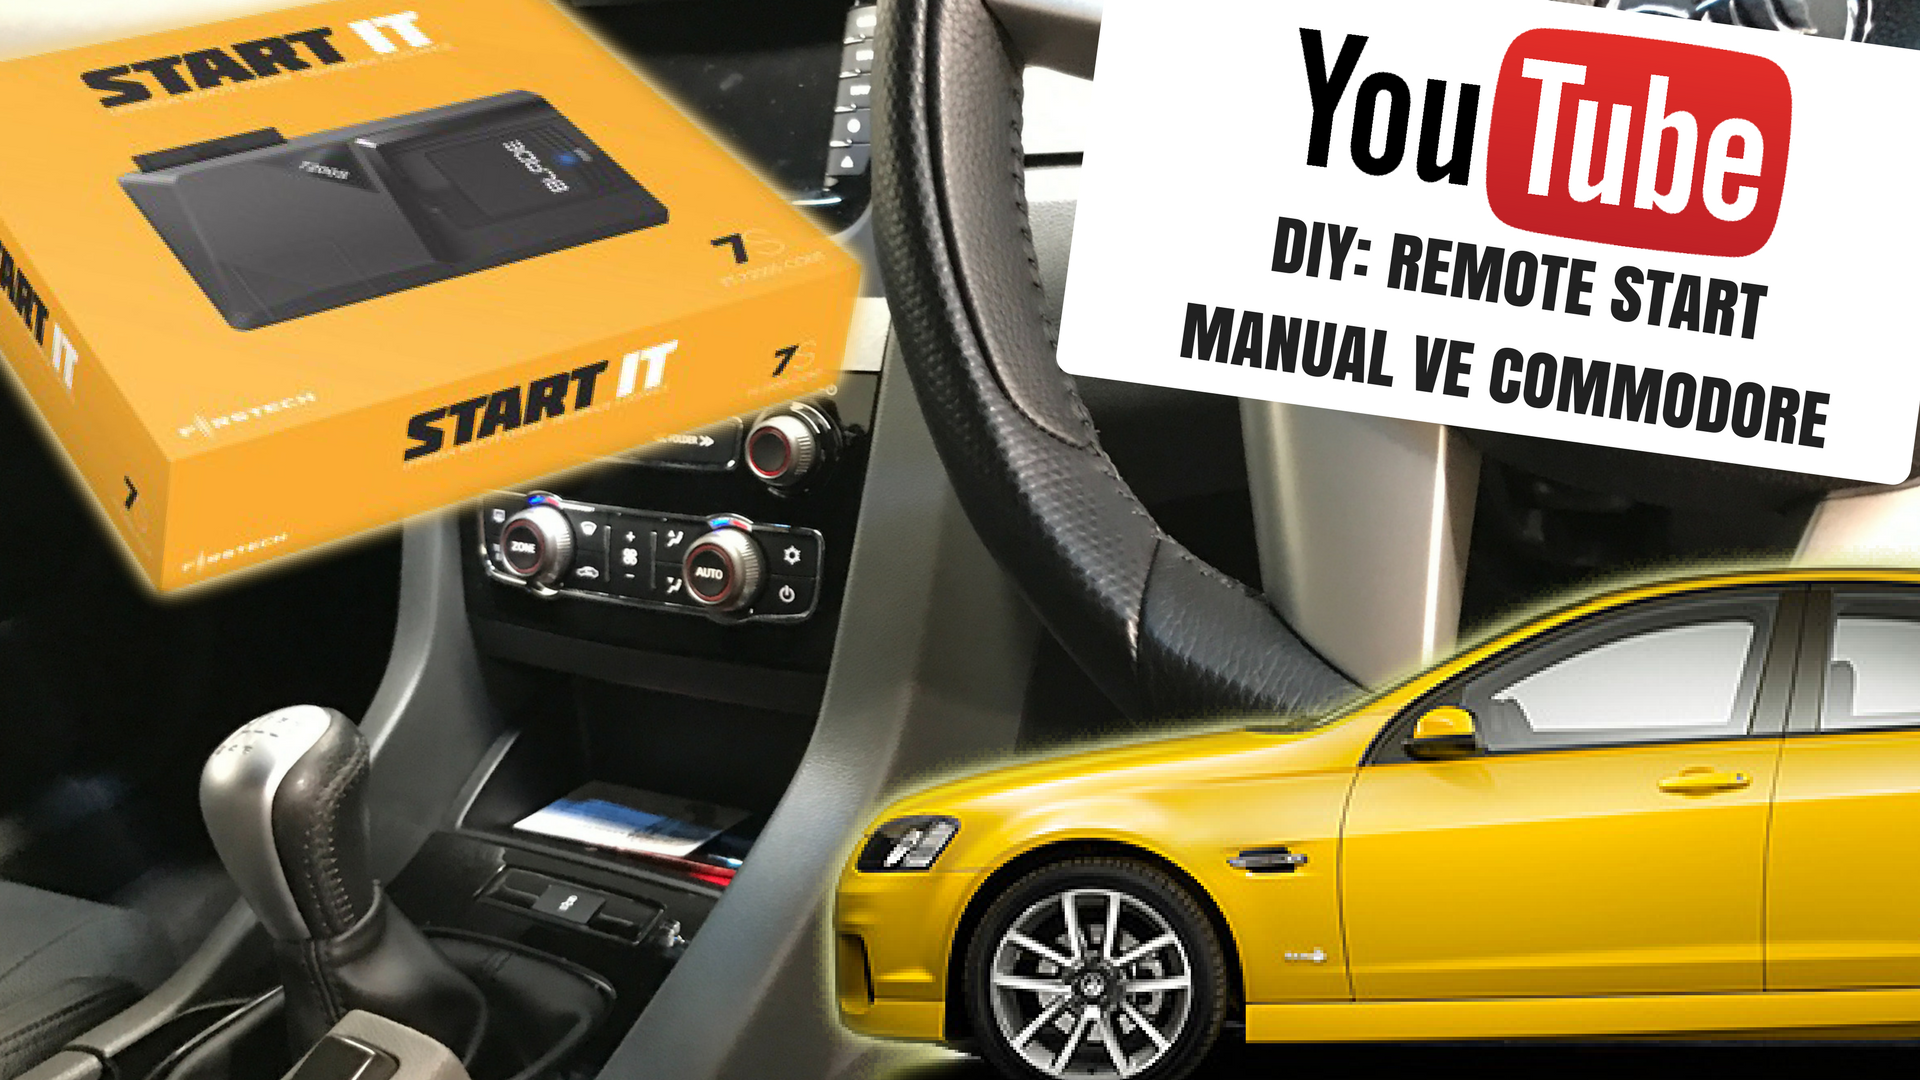 Manual Transmission Remote Start System Wiring Diagram Holden Ve Commodore Auto Mobile Viper